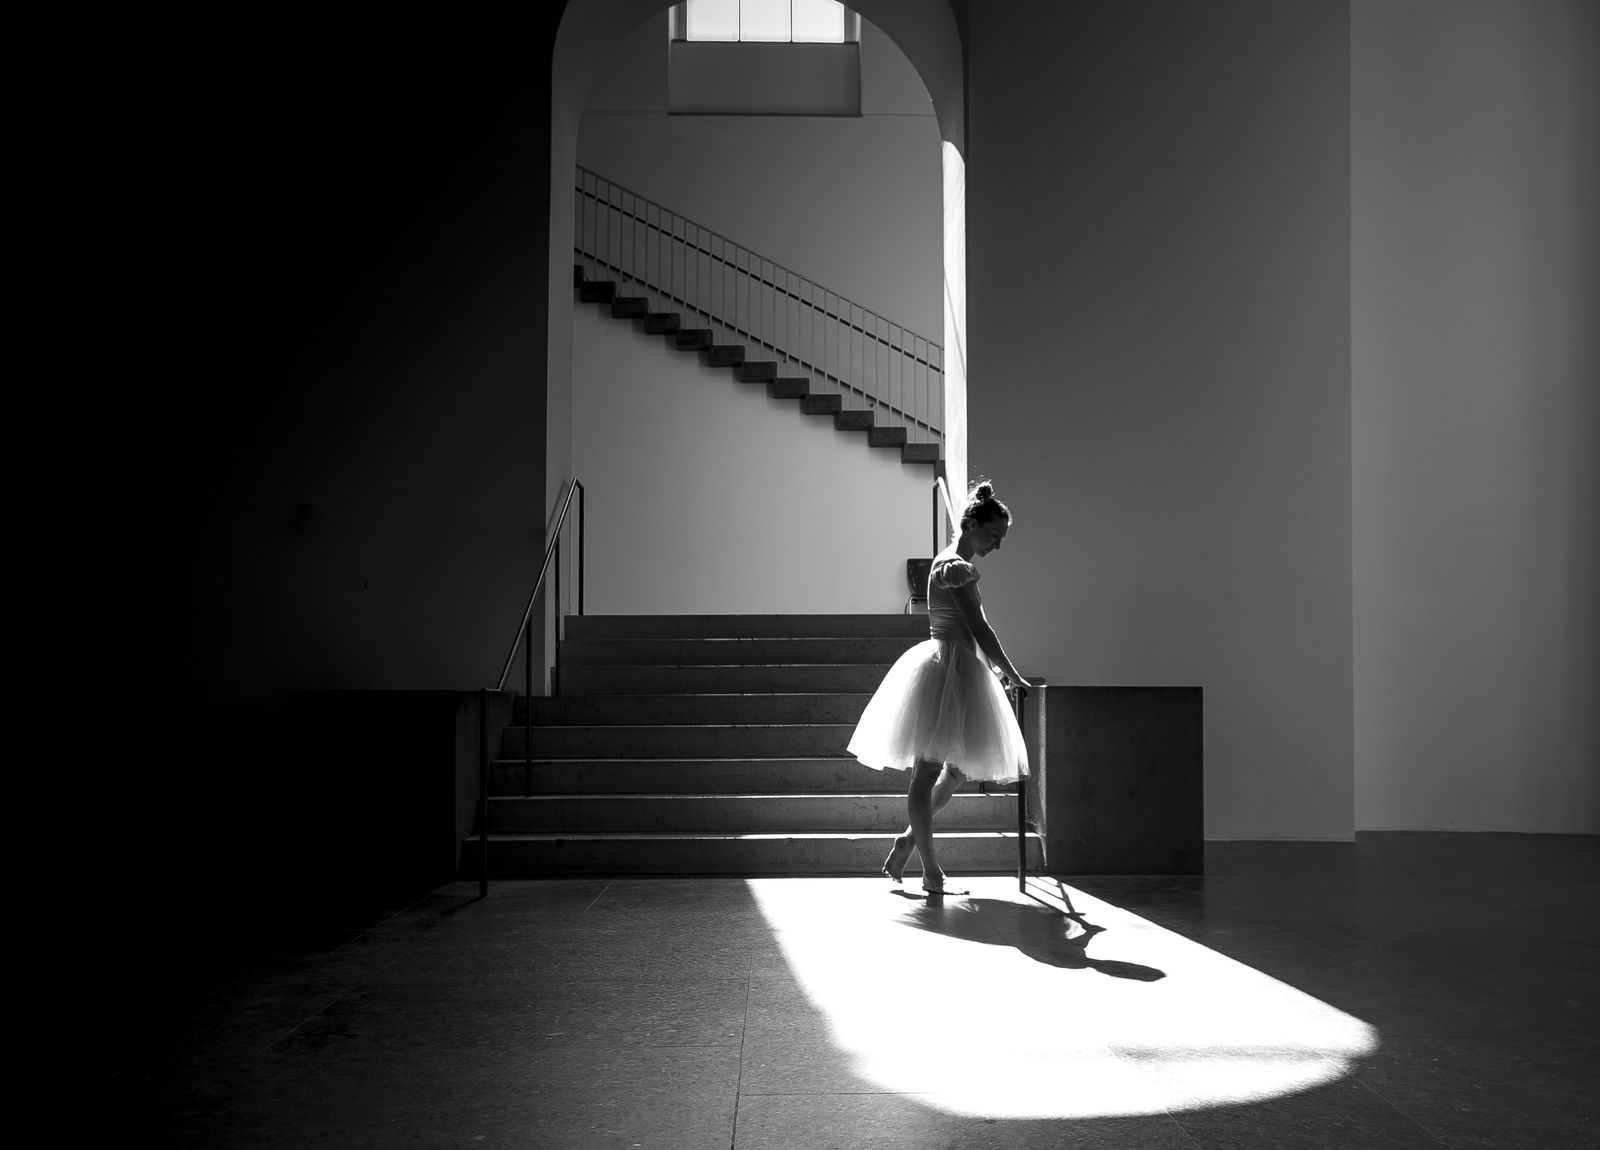 Photograph by Pascal Mueller, National Geographic Your Shot